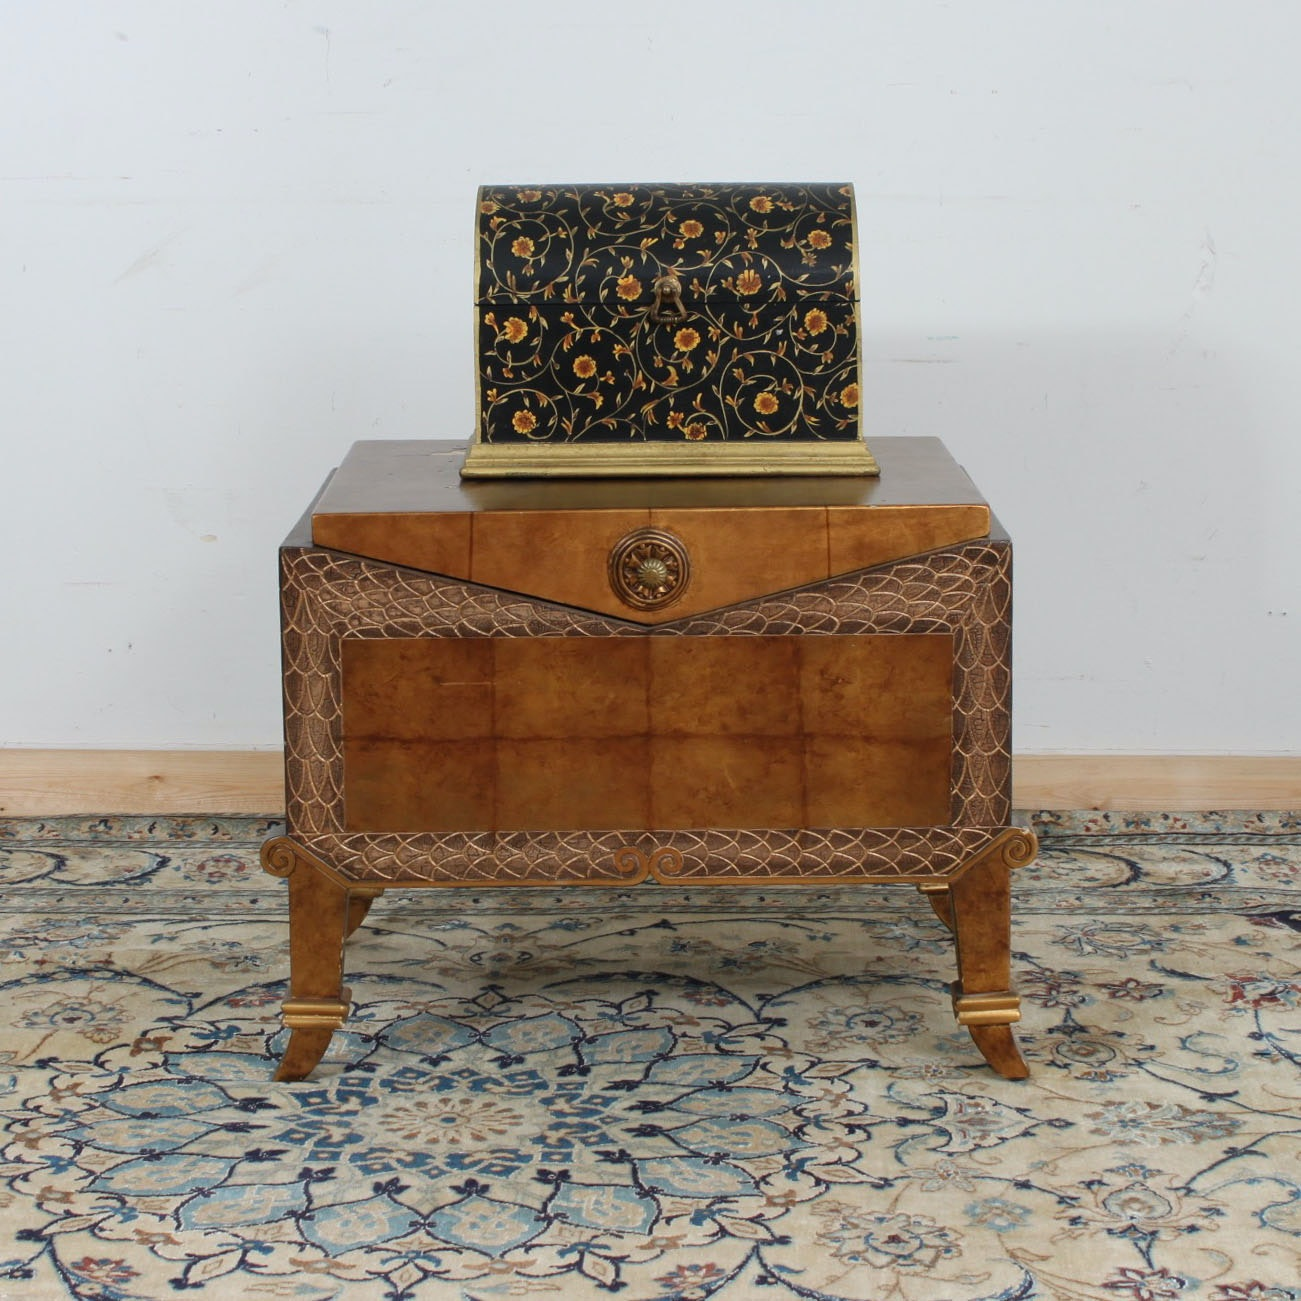 Two Decorative Chests